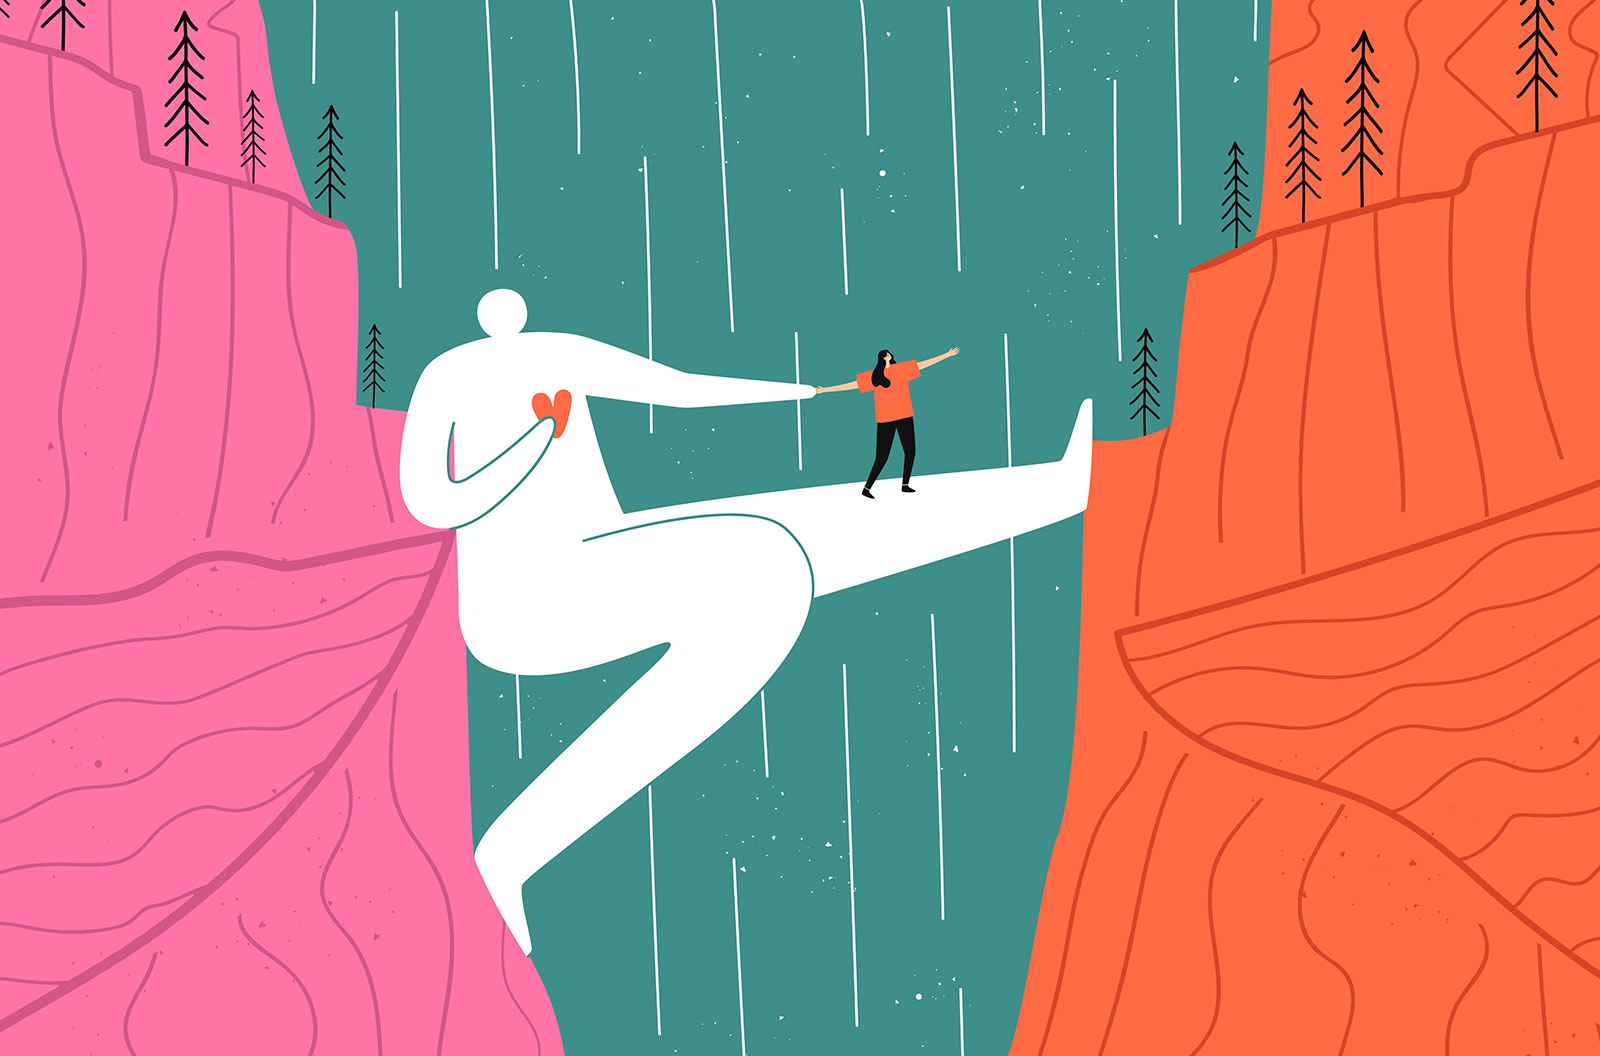 Illustration of a huge man who acts as bridge for a girl crossing a canyon with a waterfall